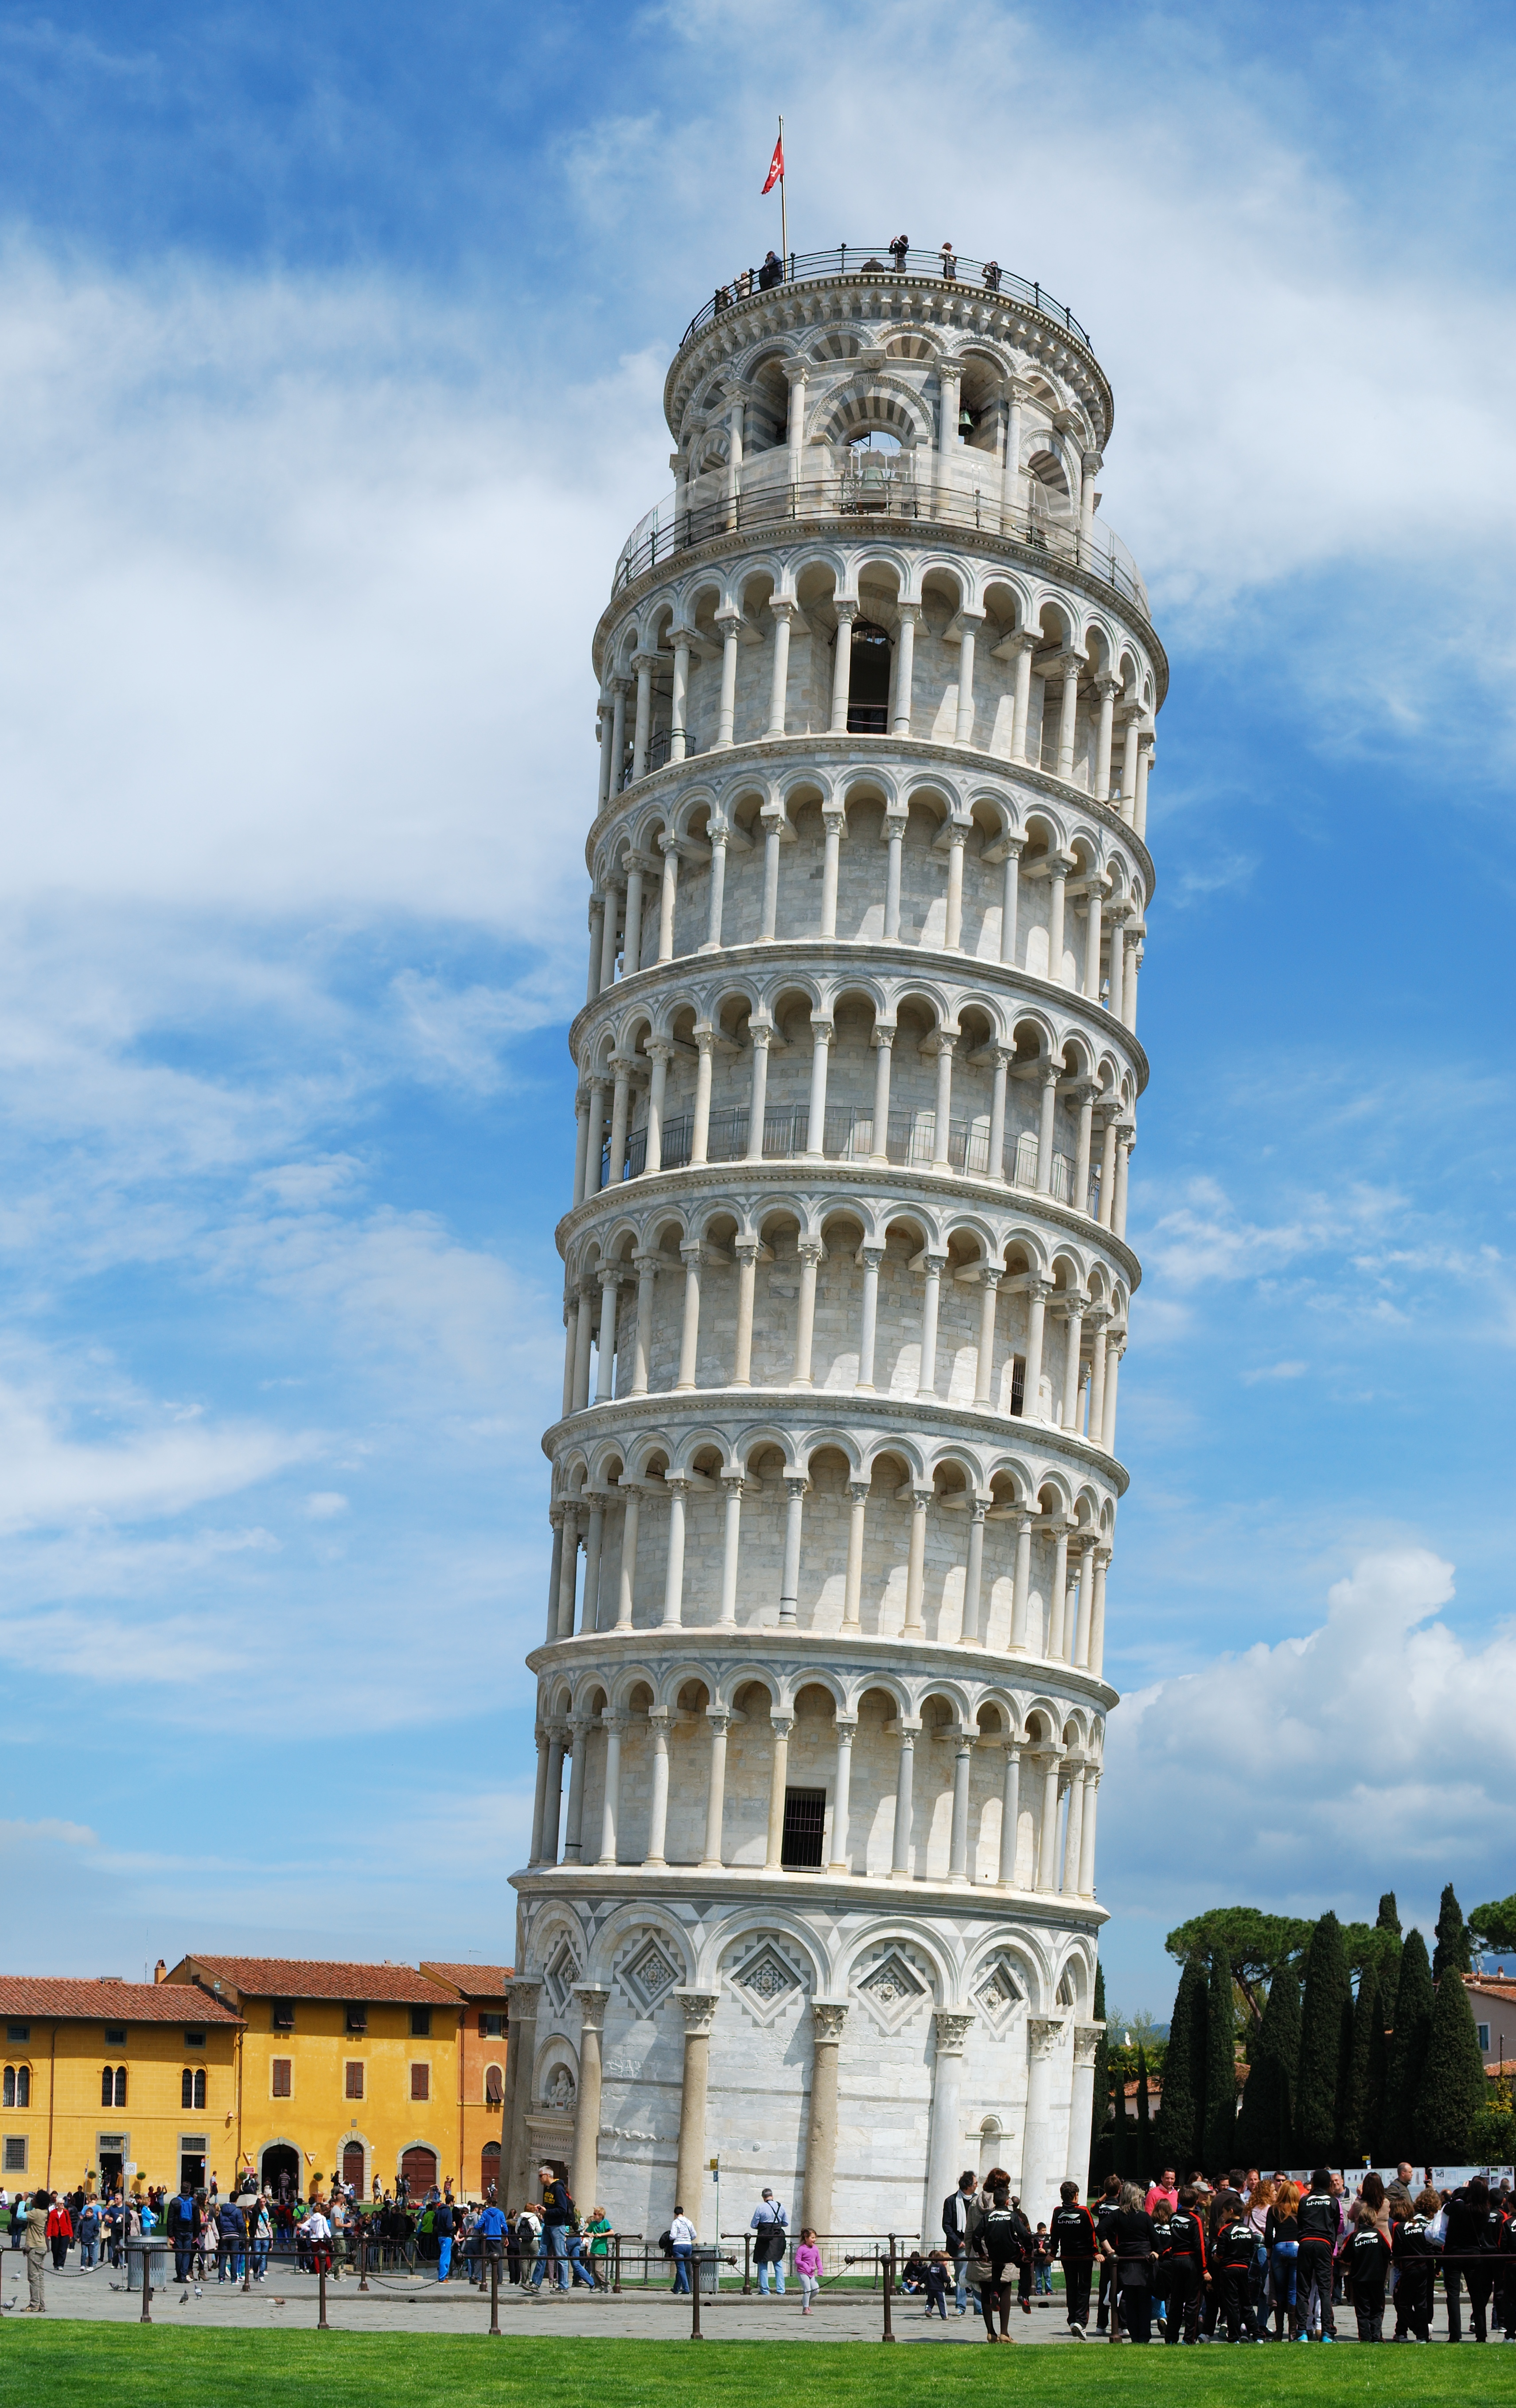 Leaning Tower of Pisa - Travelling Moods